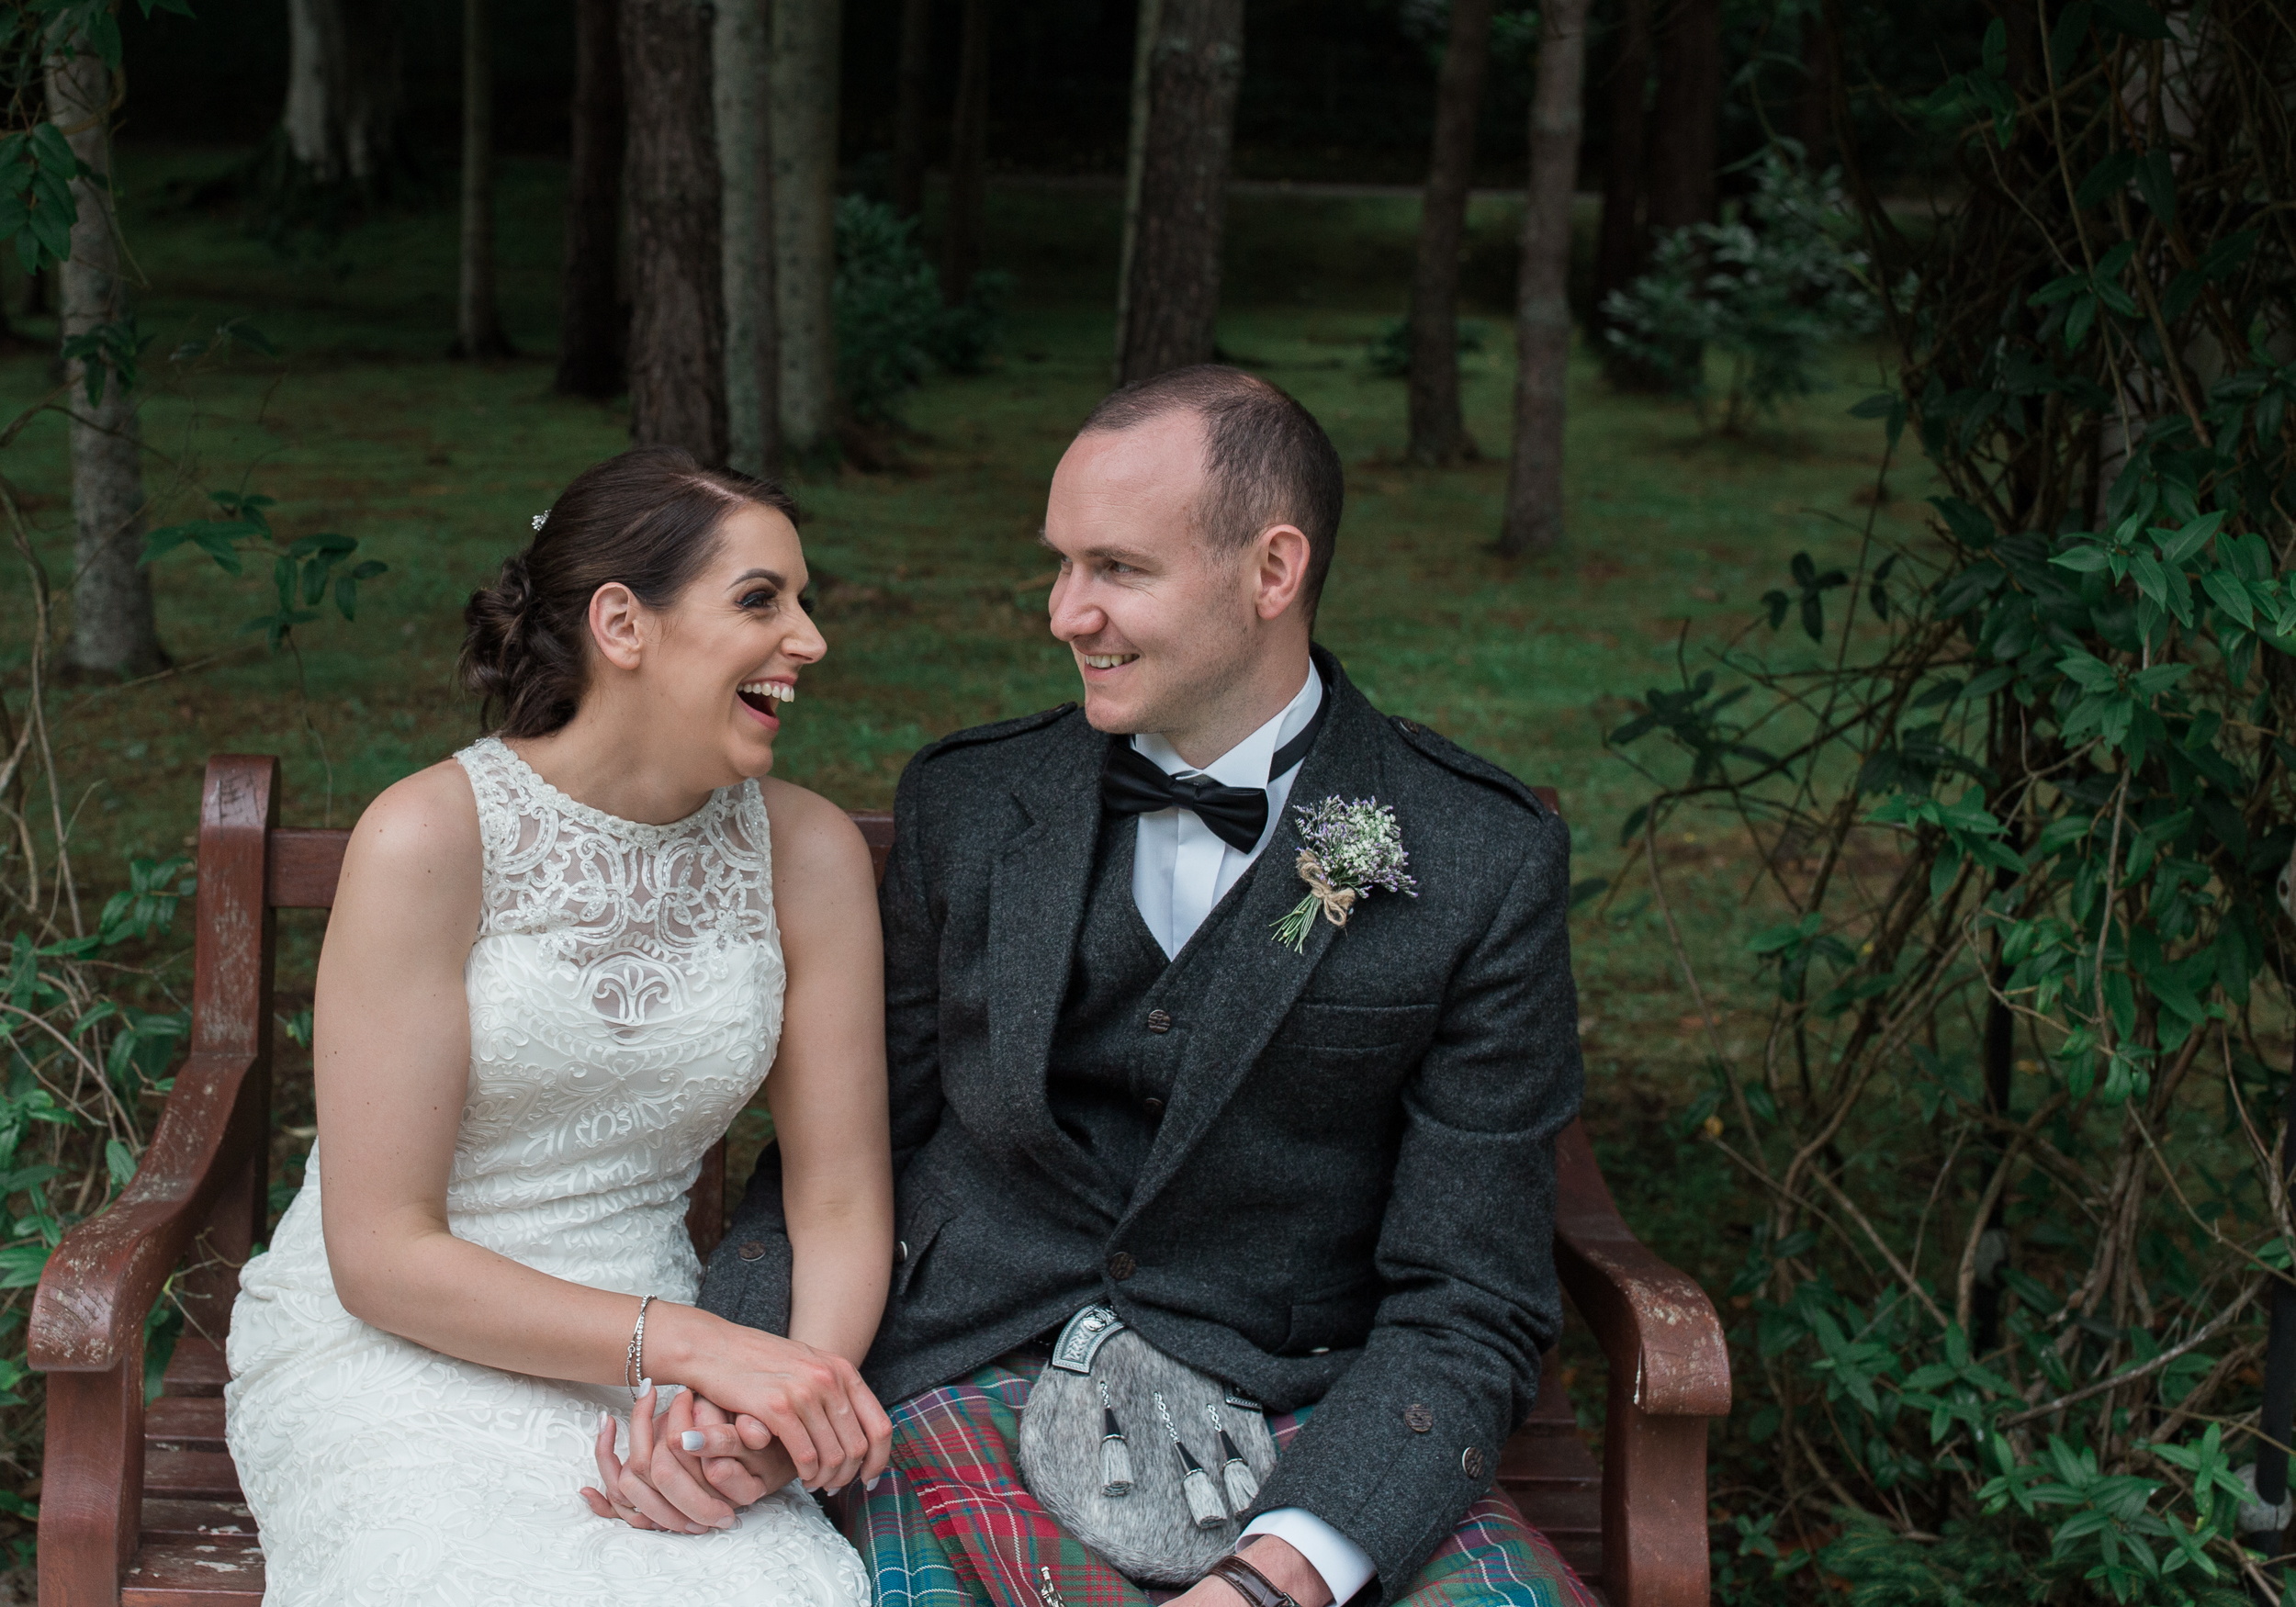 banchorylodgeweddingphotography (19 of 21).jpg